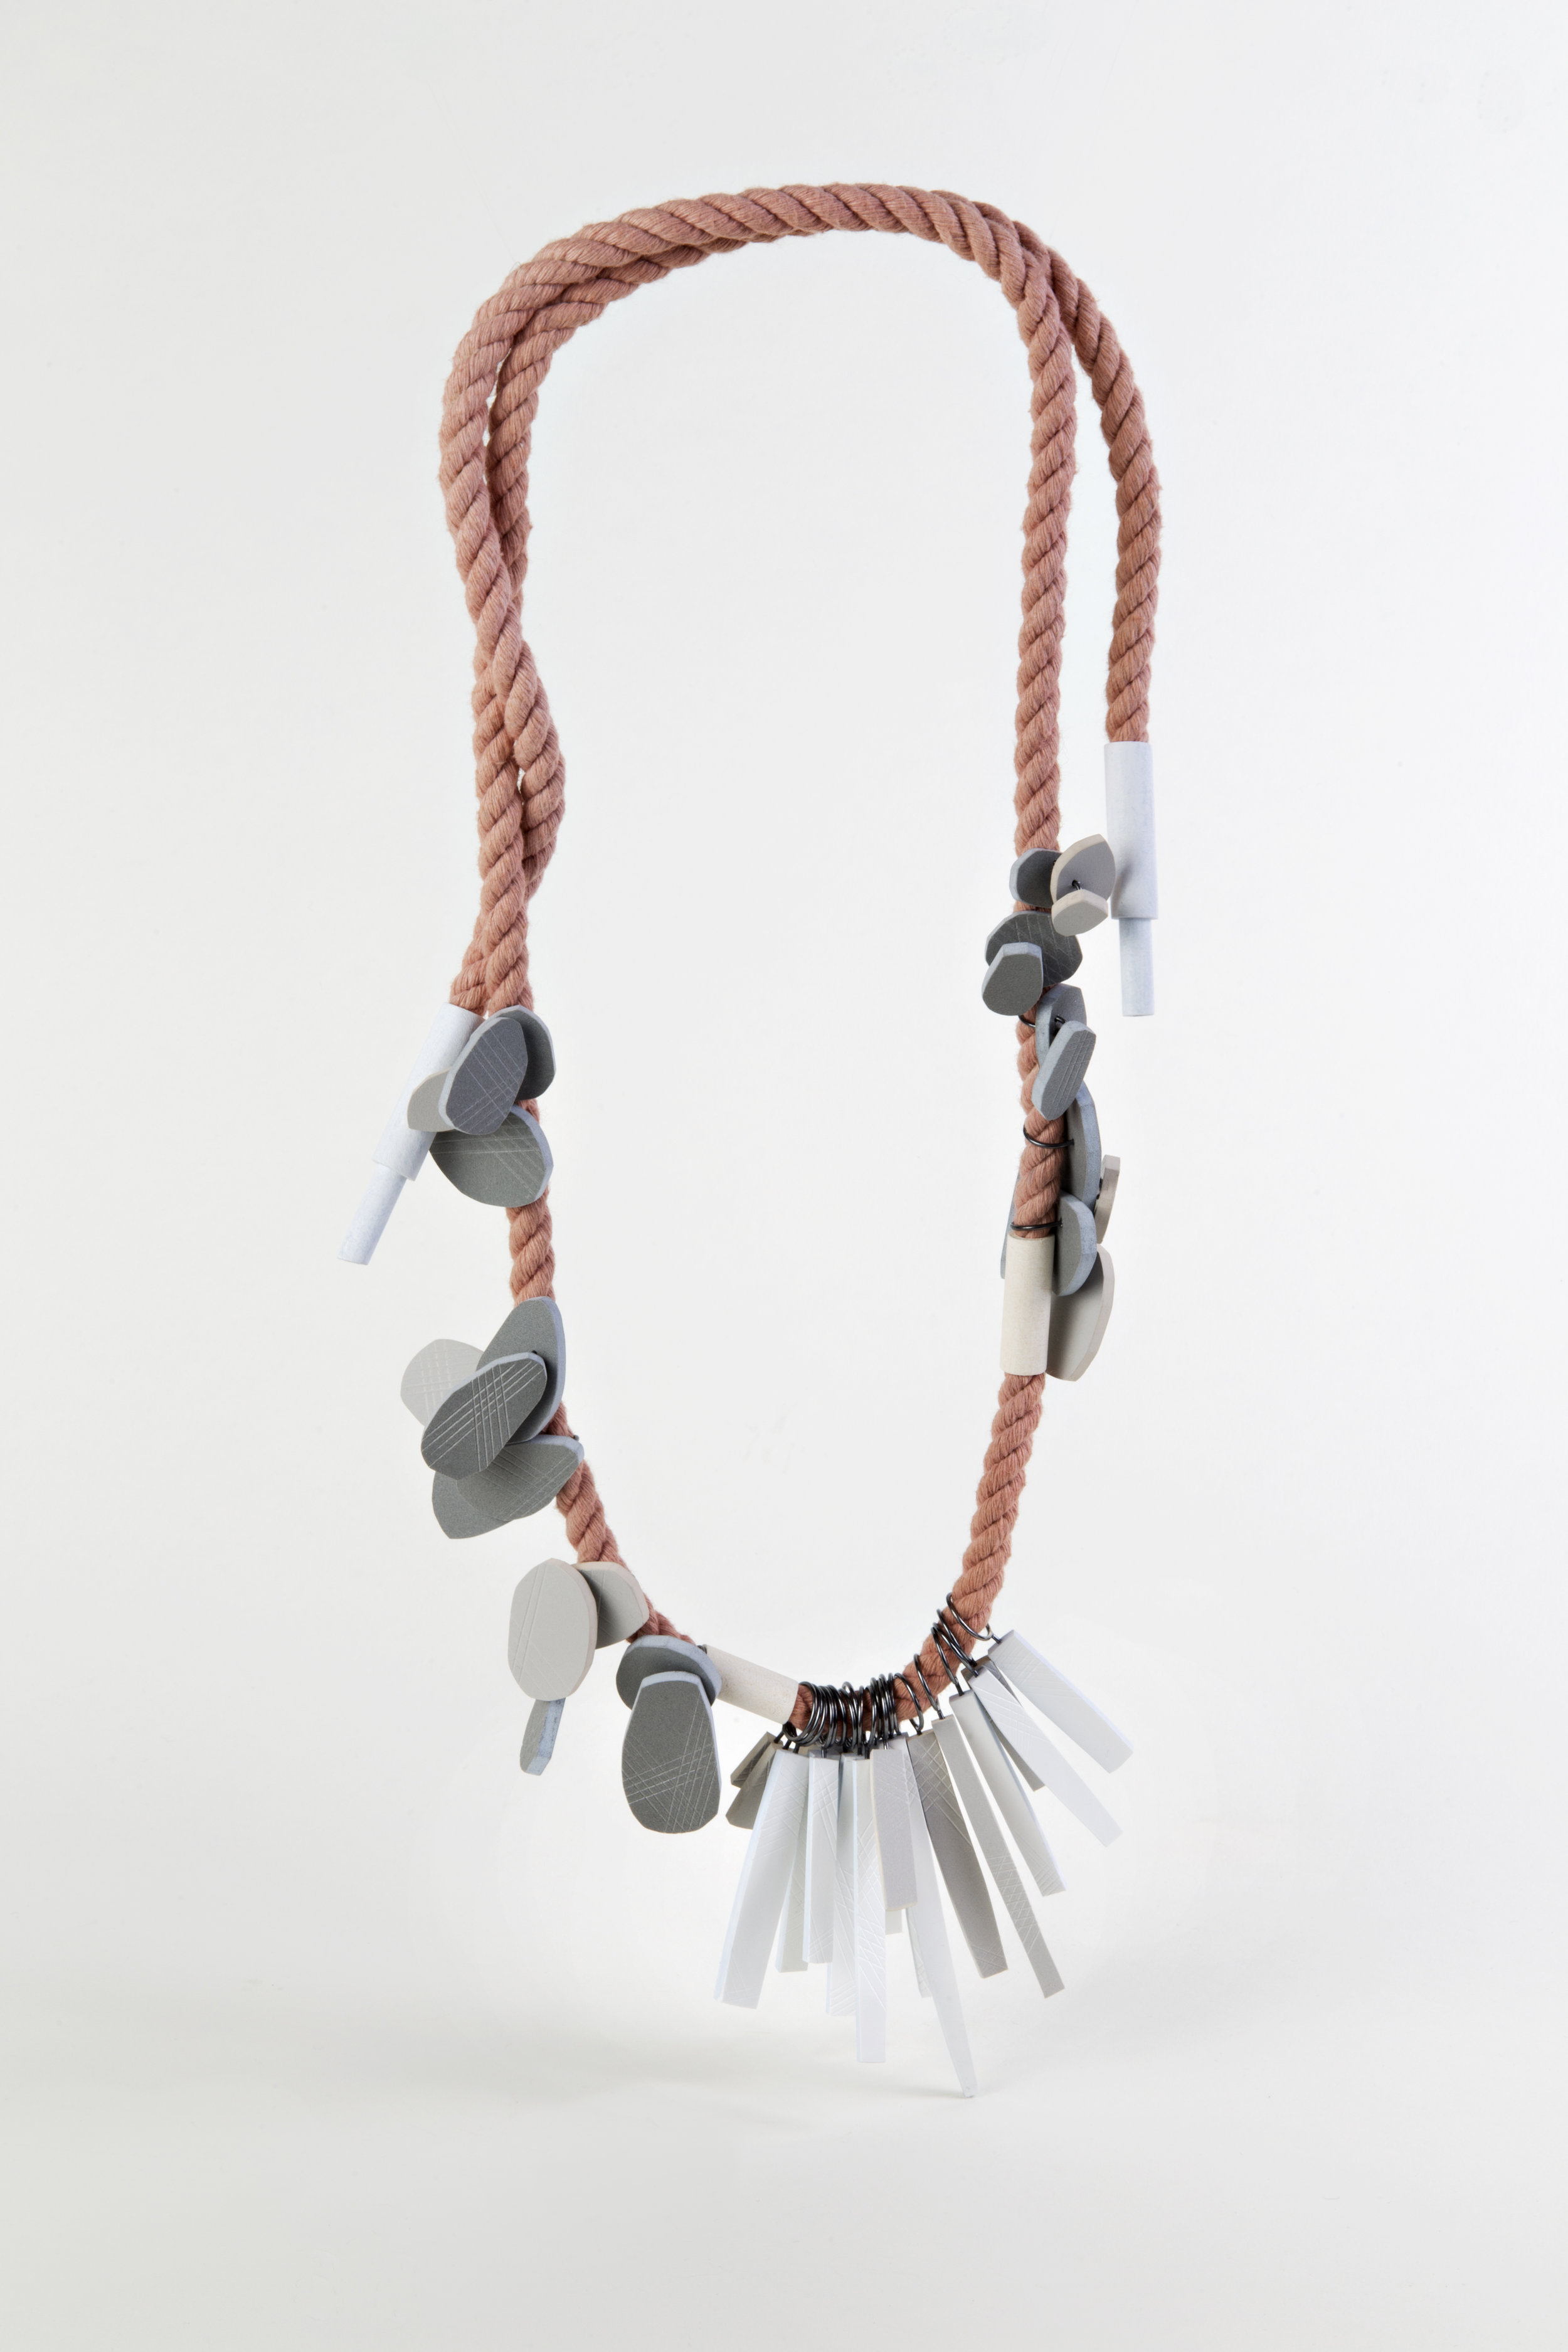 Clustered Nuggets and Straws  , PVC, silver, rope